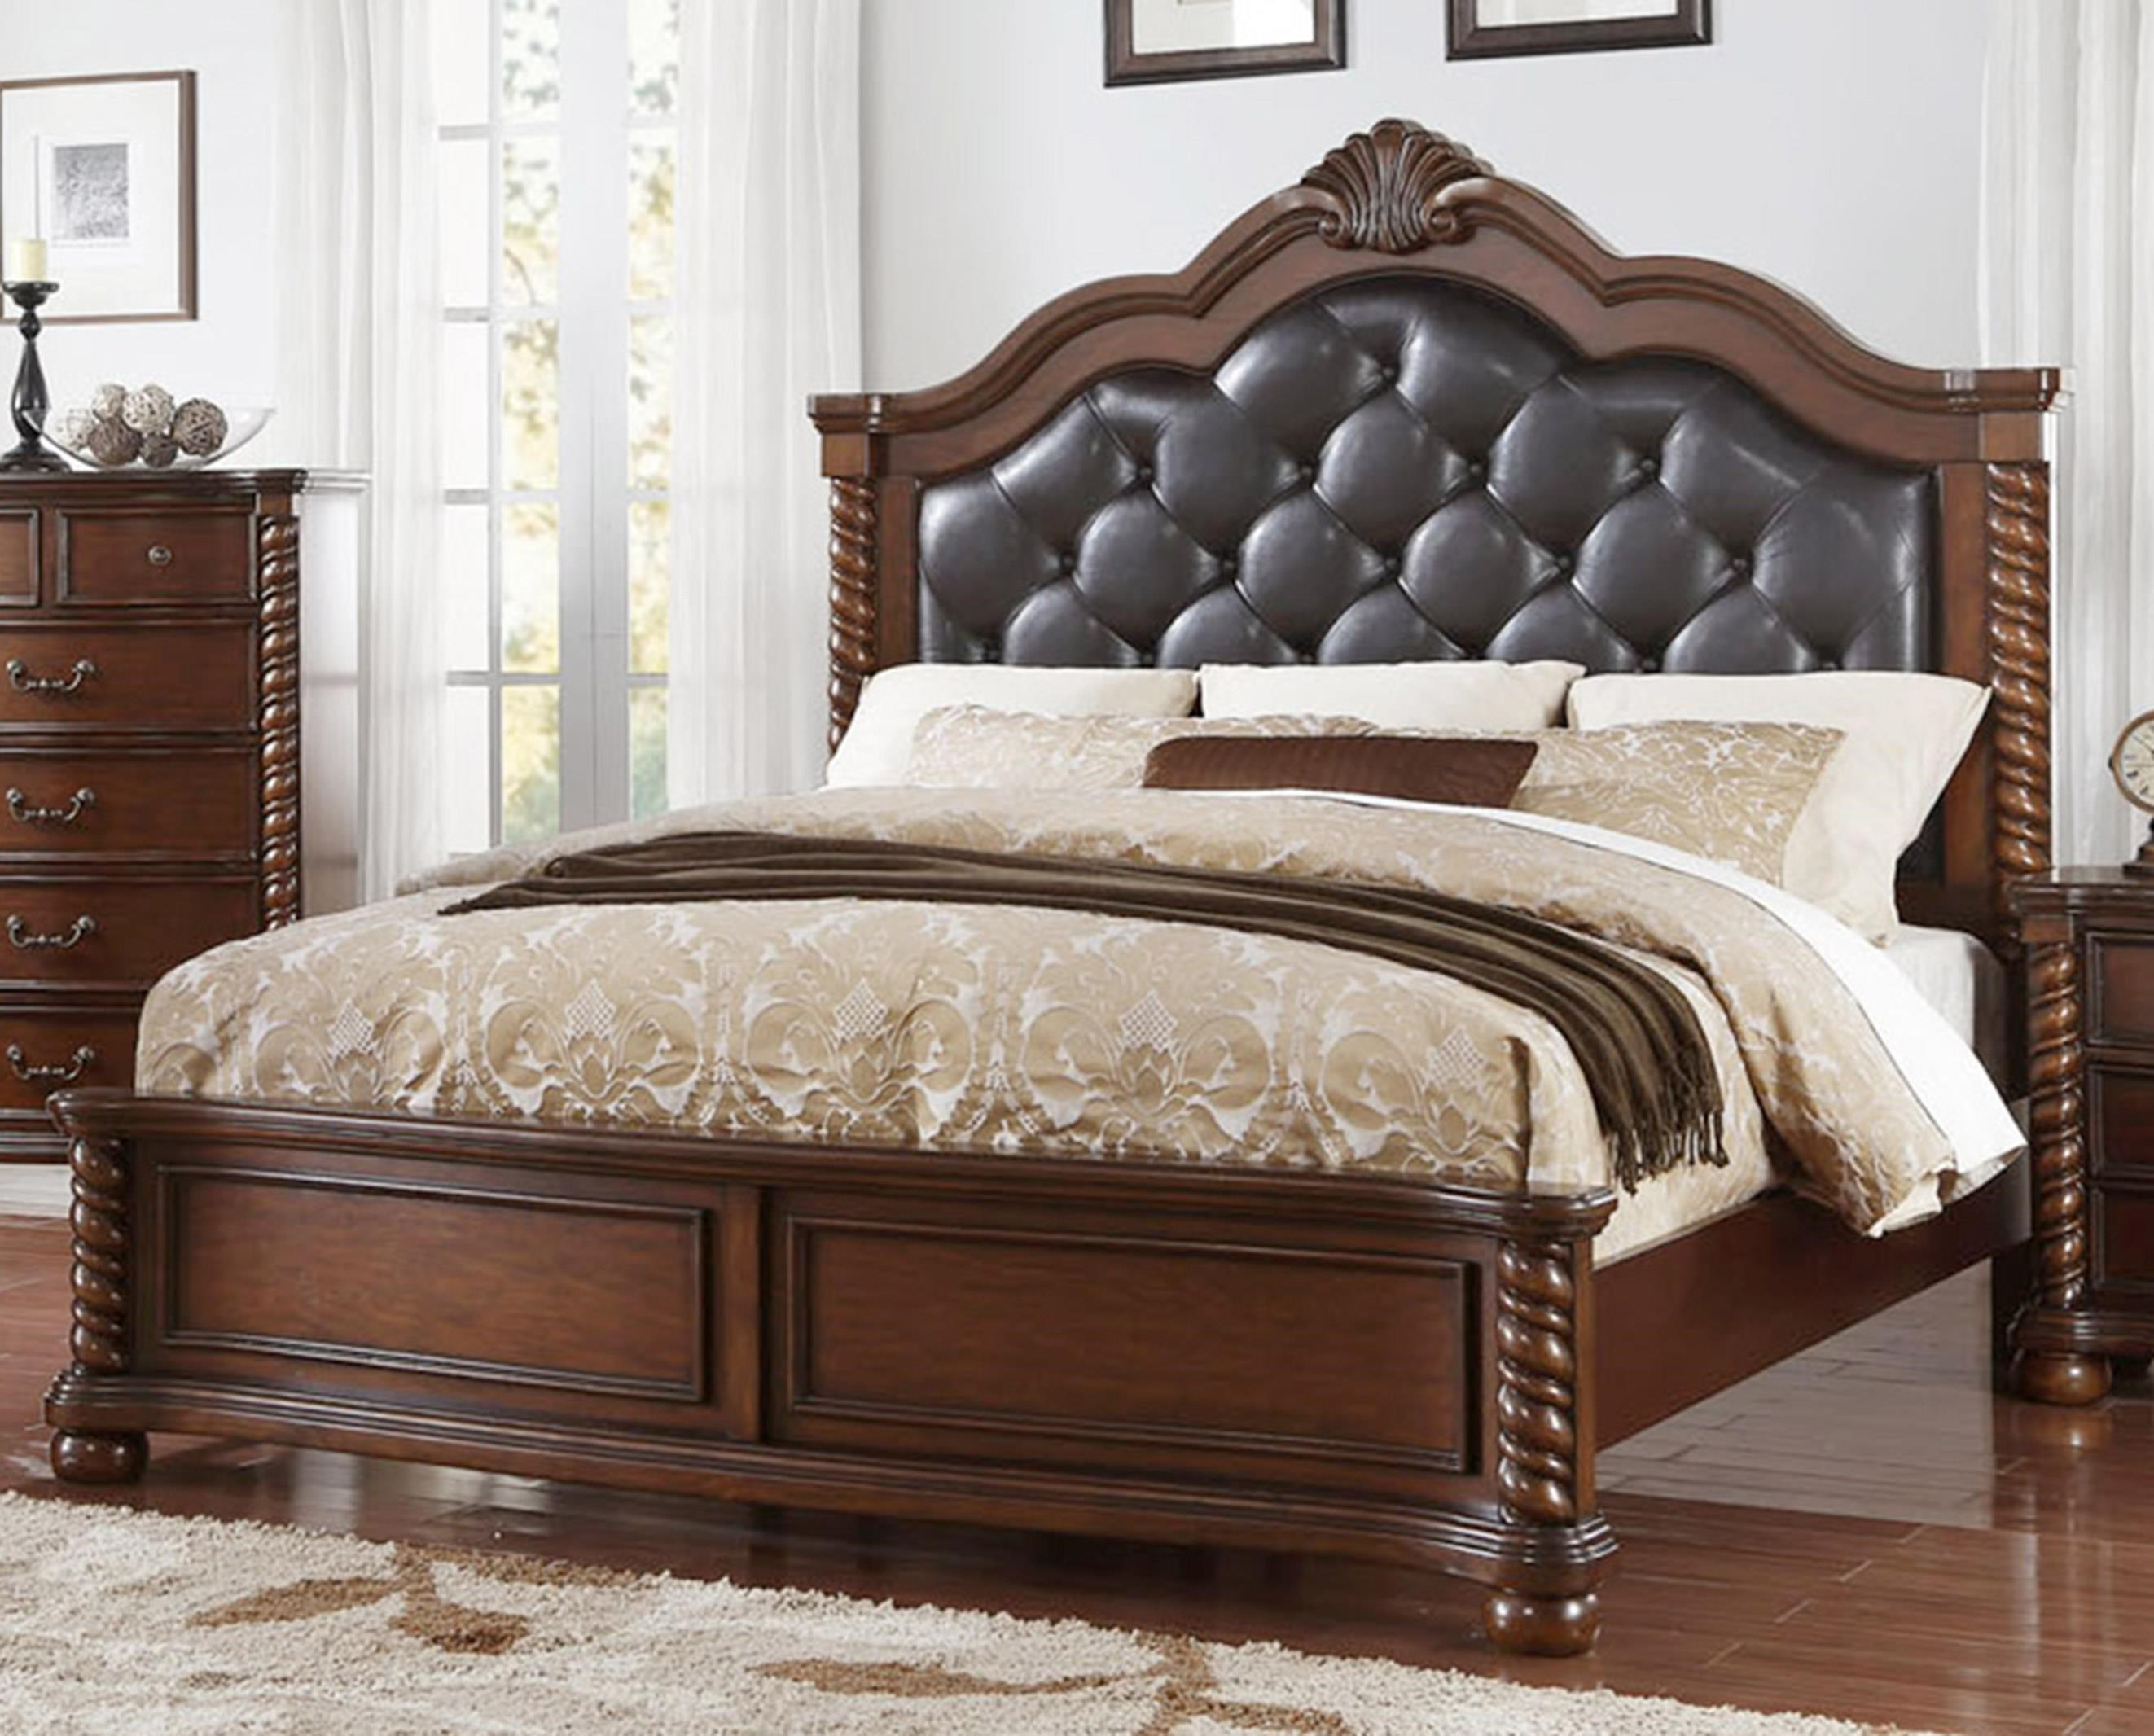 King Bed with Diamond-Tufted Headboa